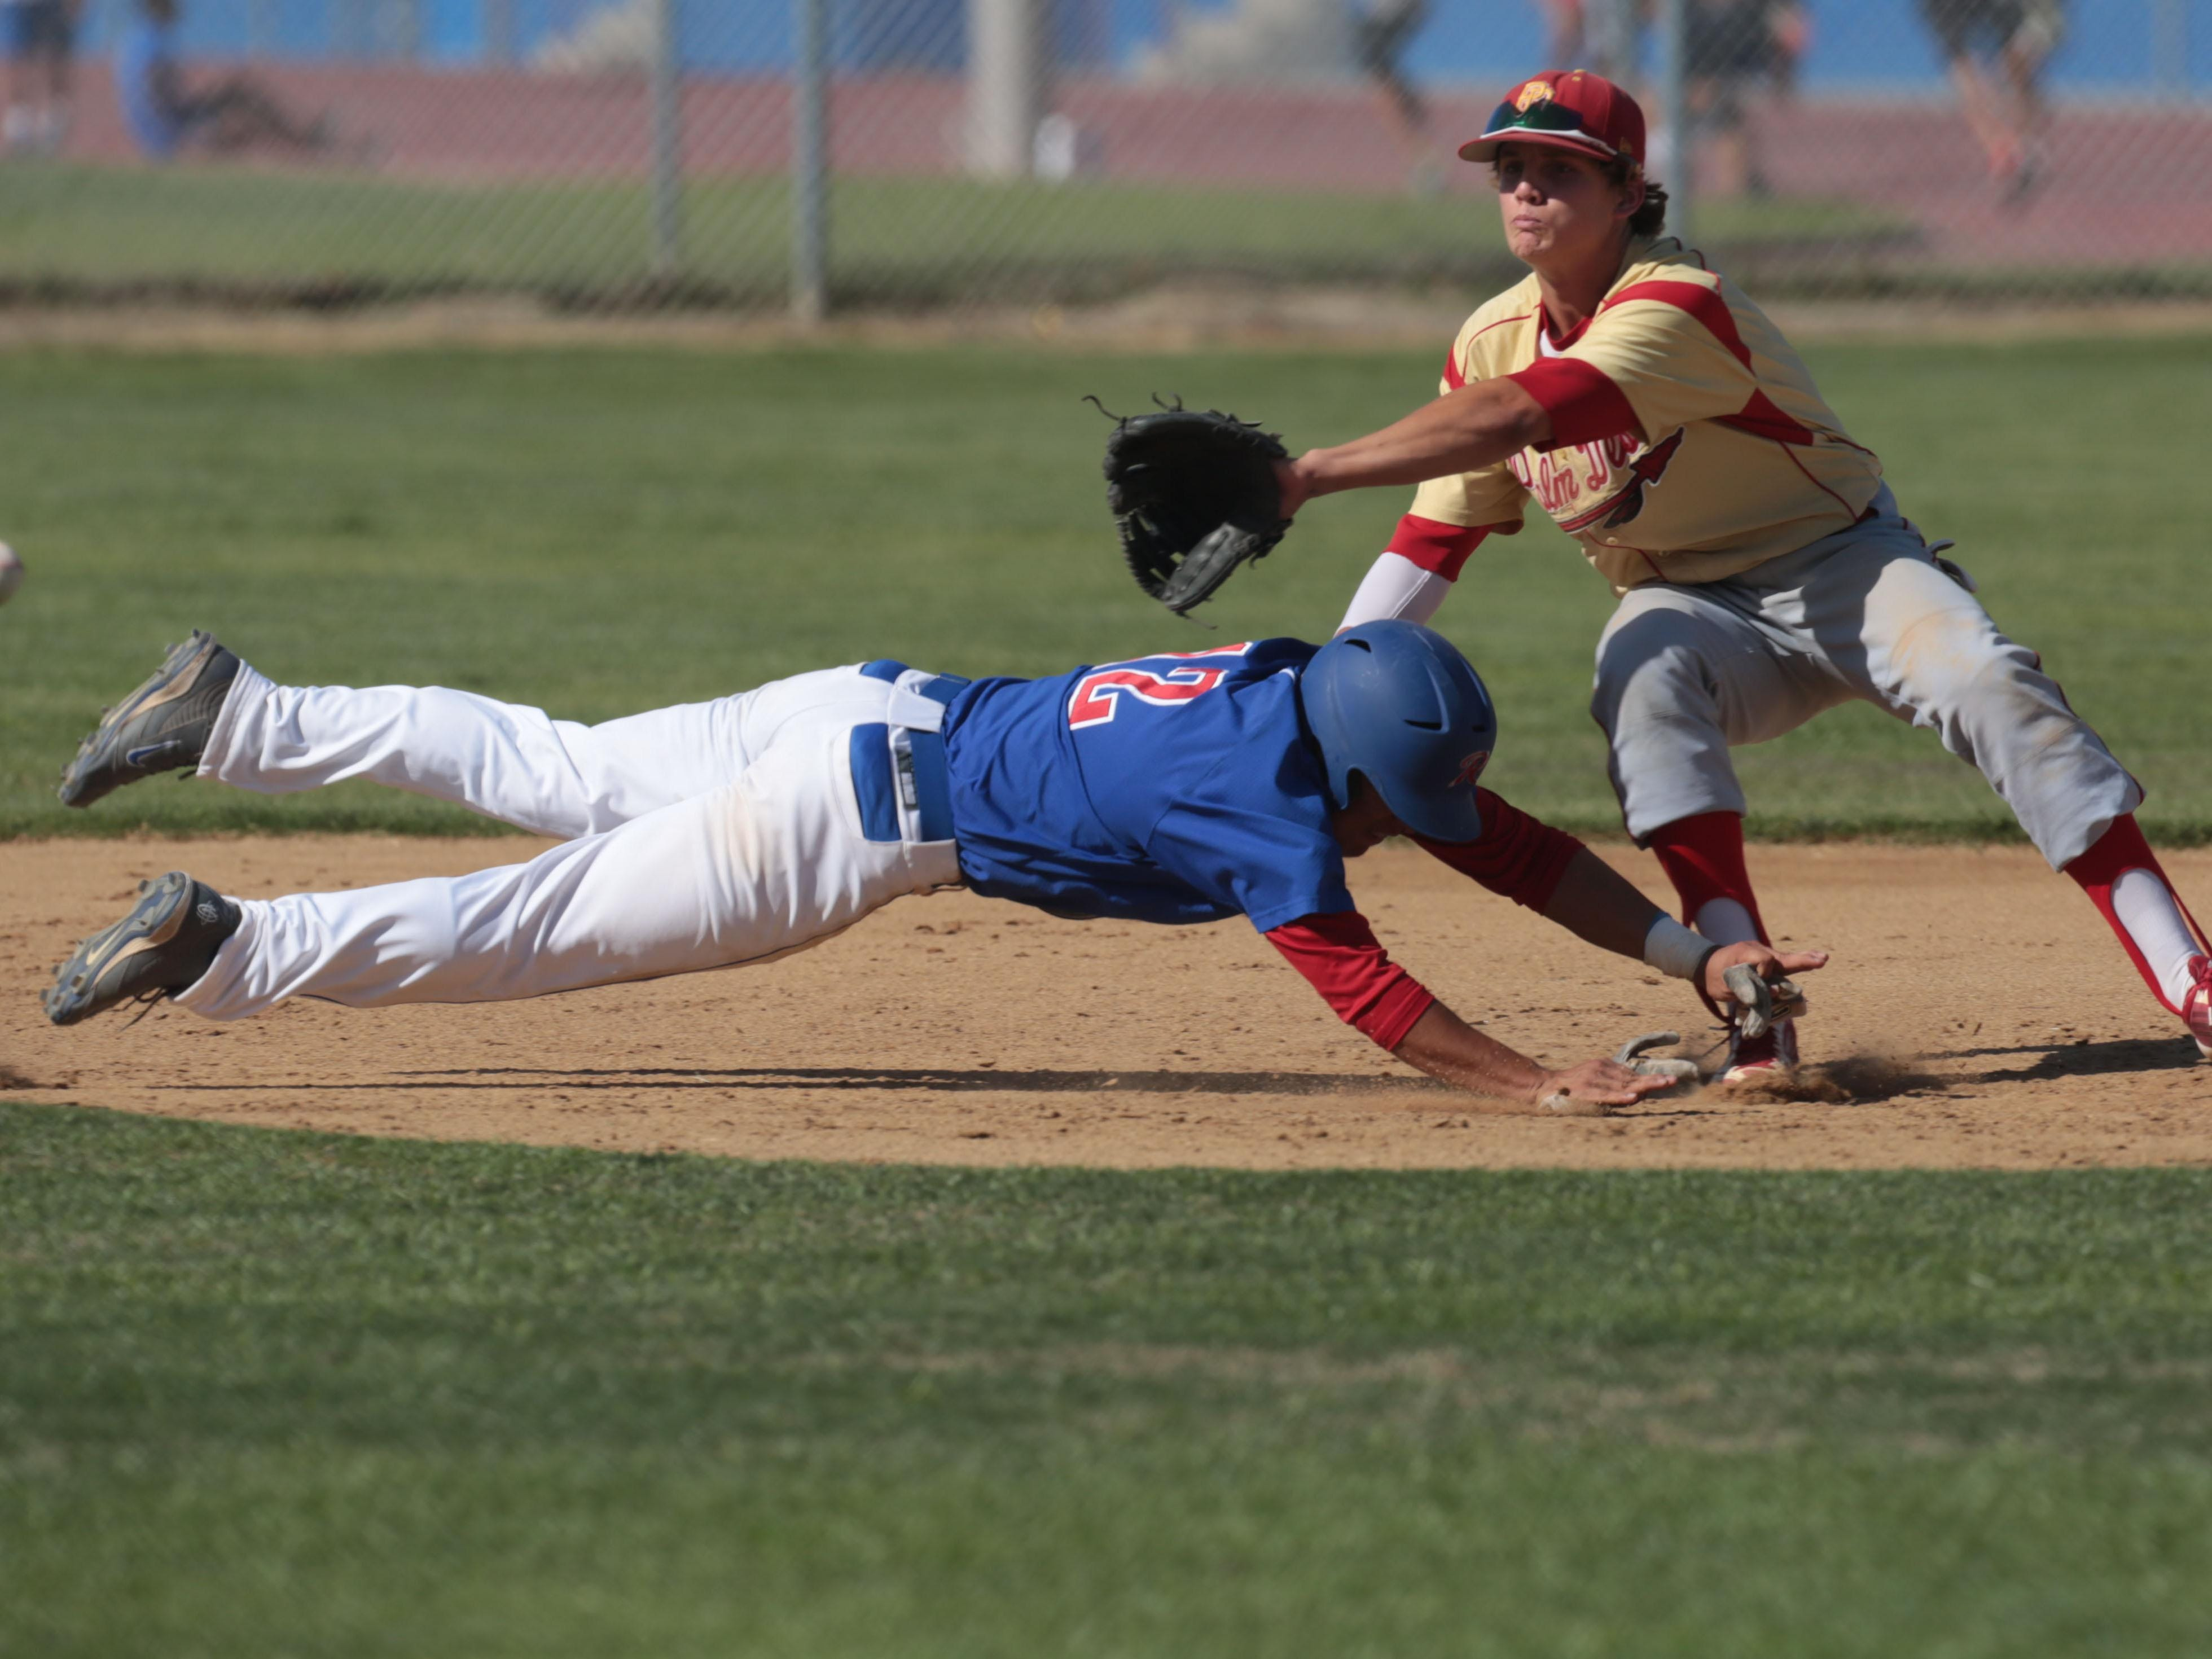 Indio's Jonathan Diaz dives safely back on to second as the ball reaches Palm Desert's Travis Moniot on Tuesday, April 15, 2014 in Indio.